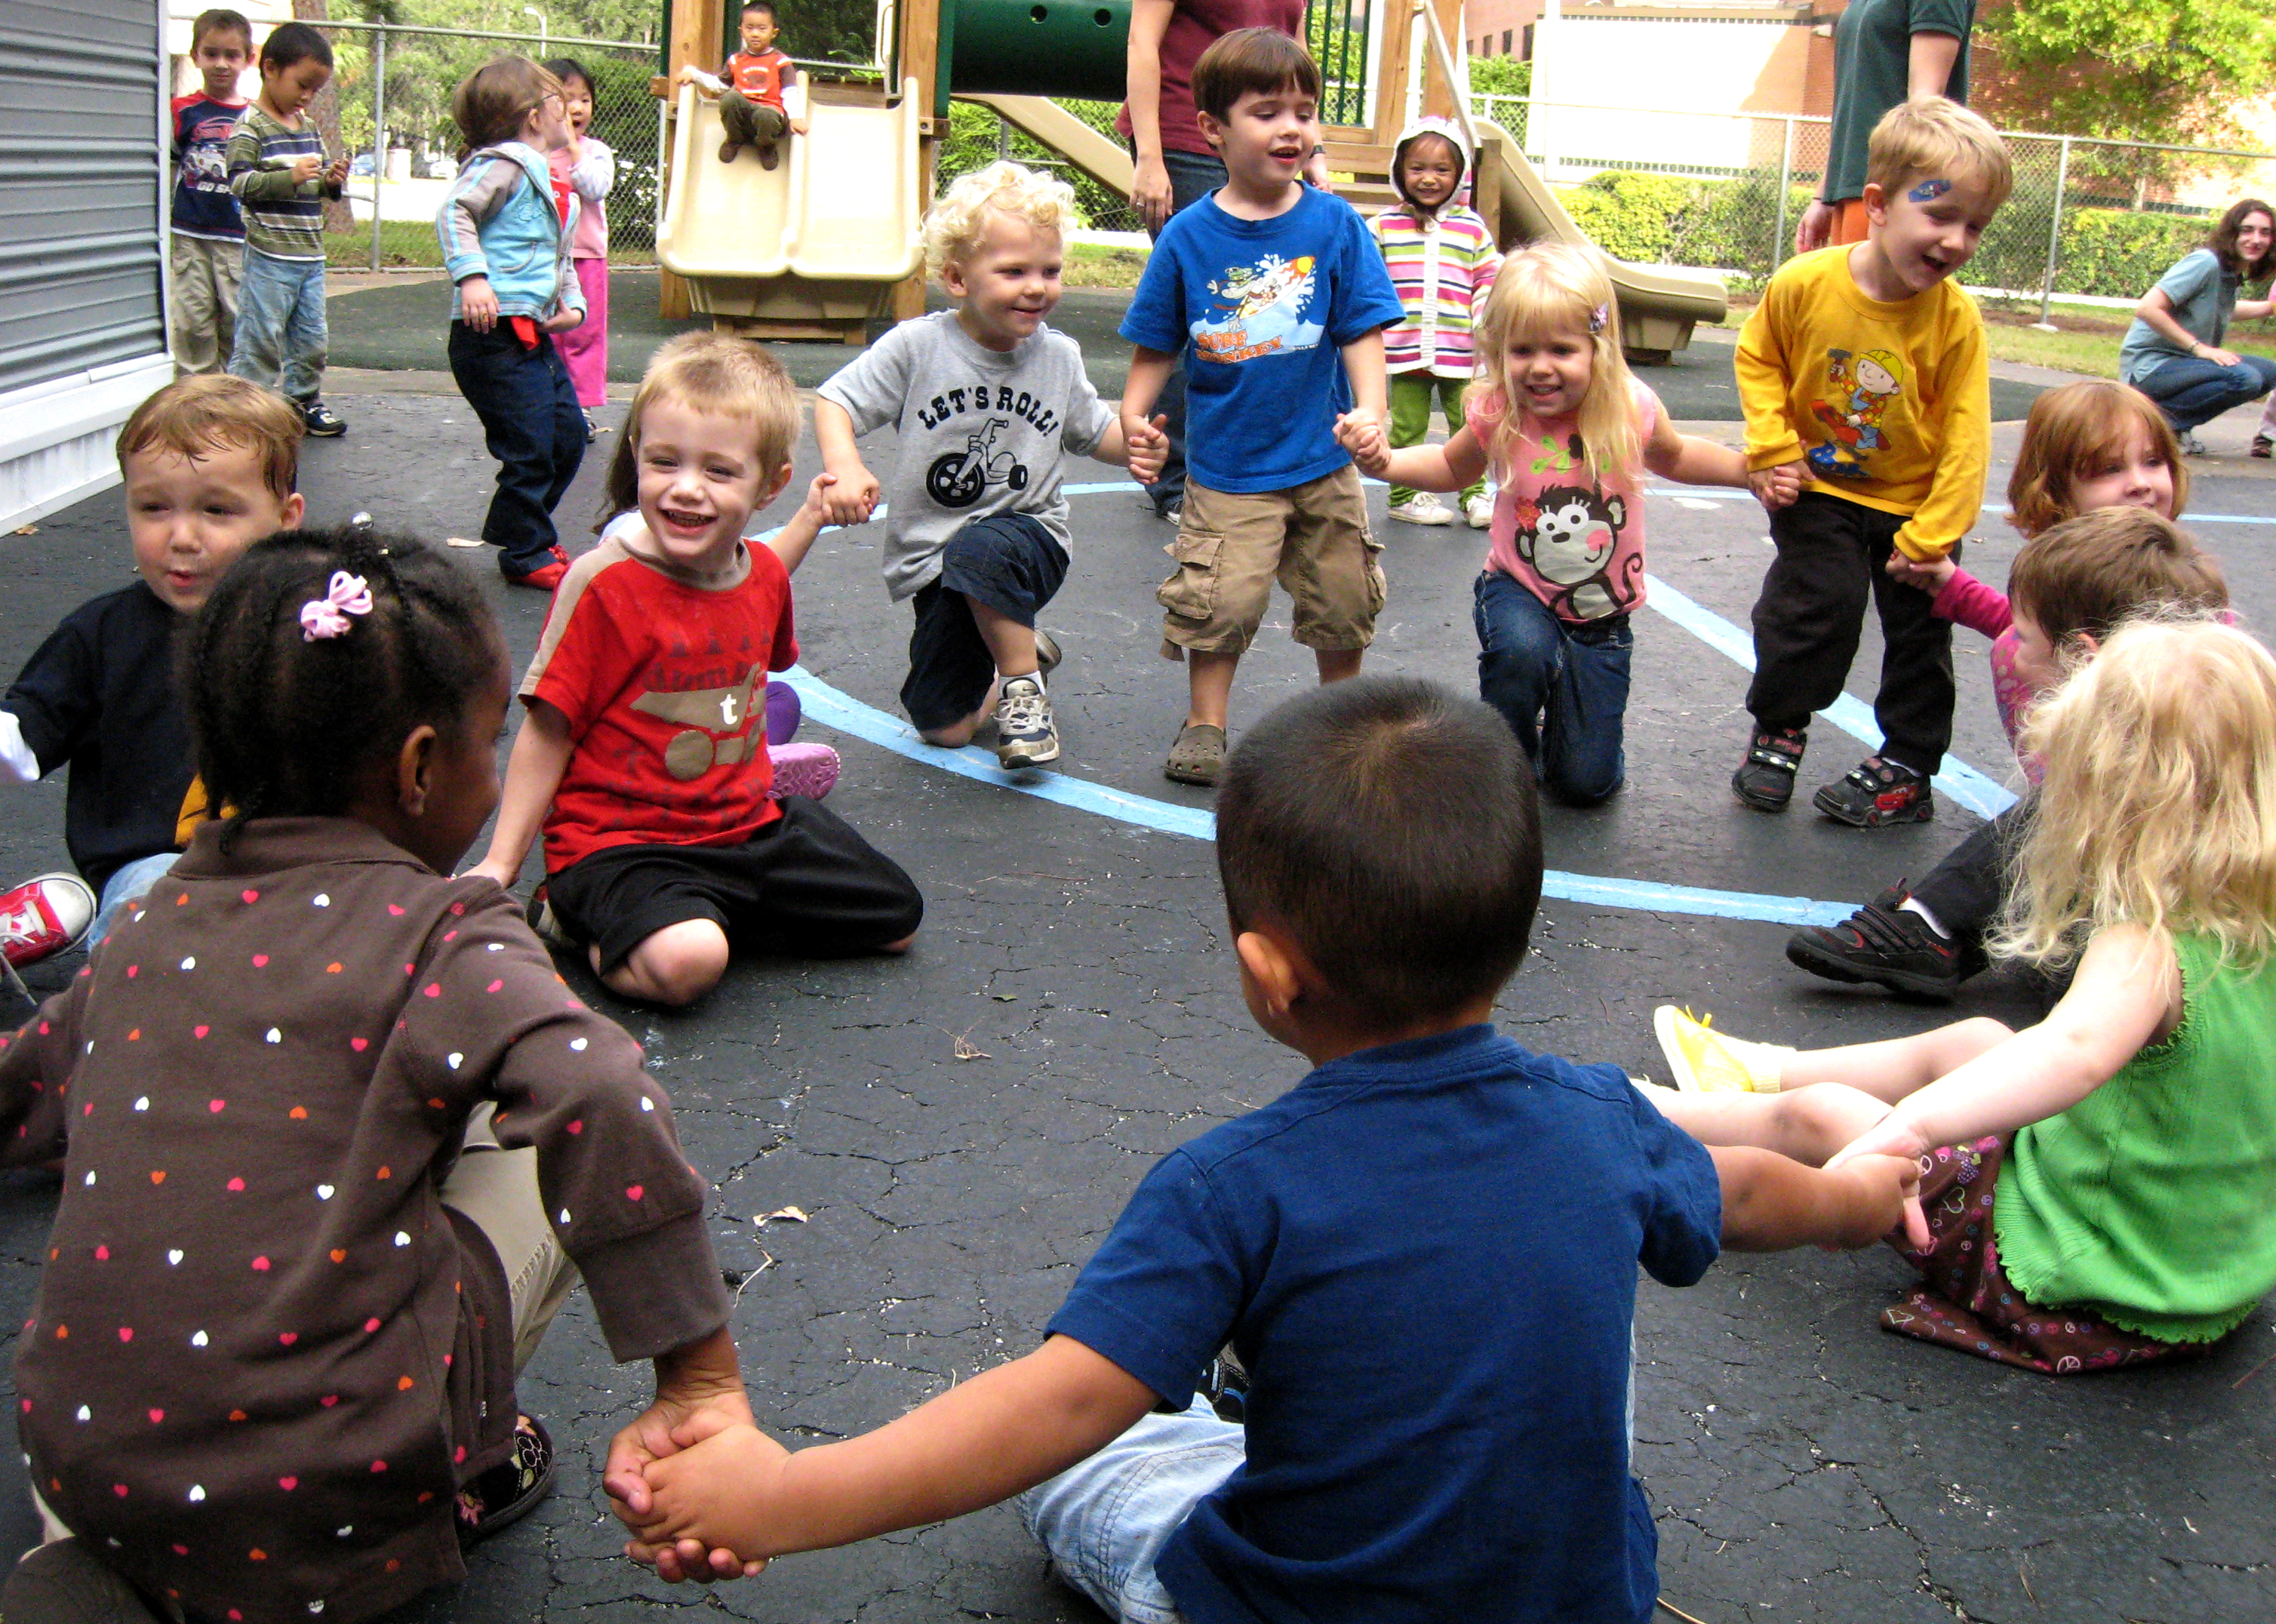 children playing ring around the rosie outside